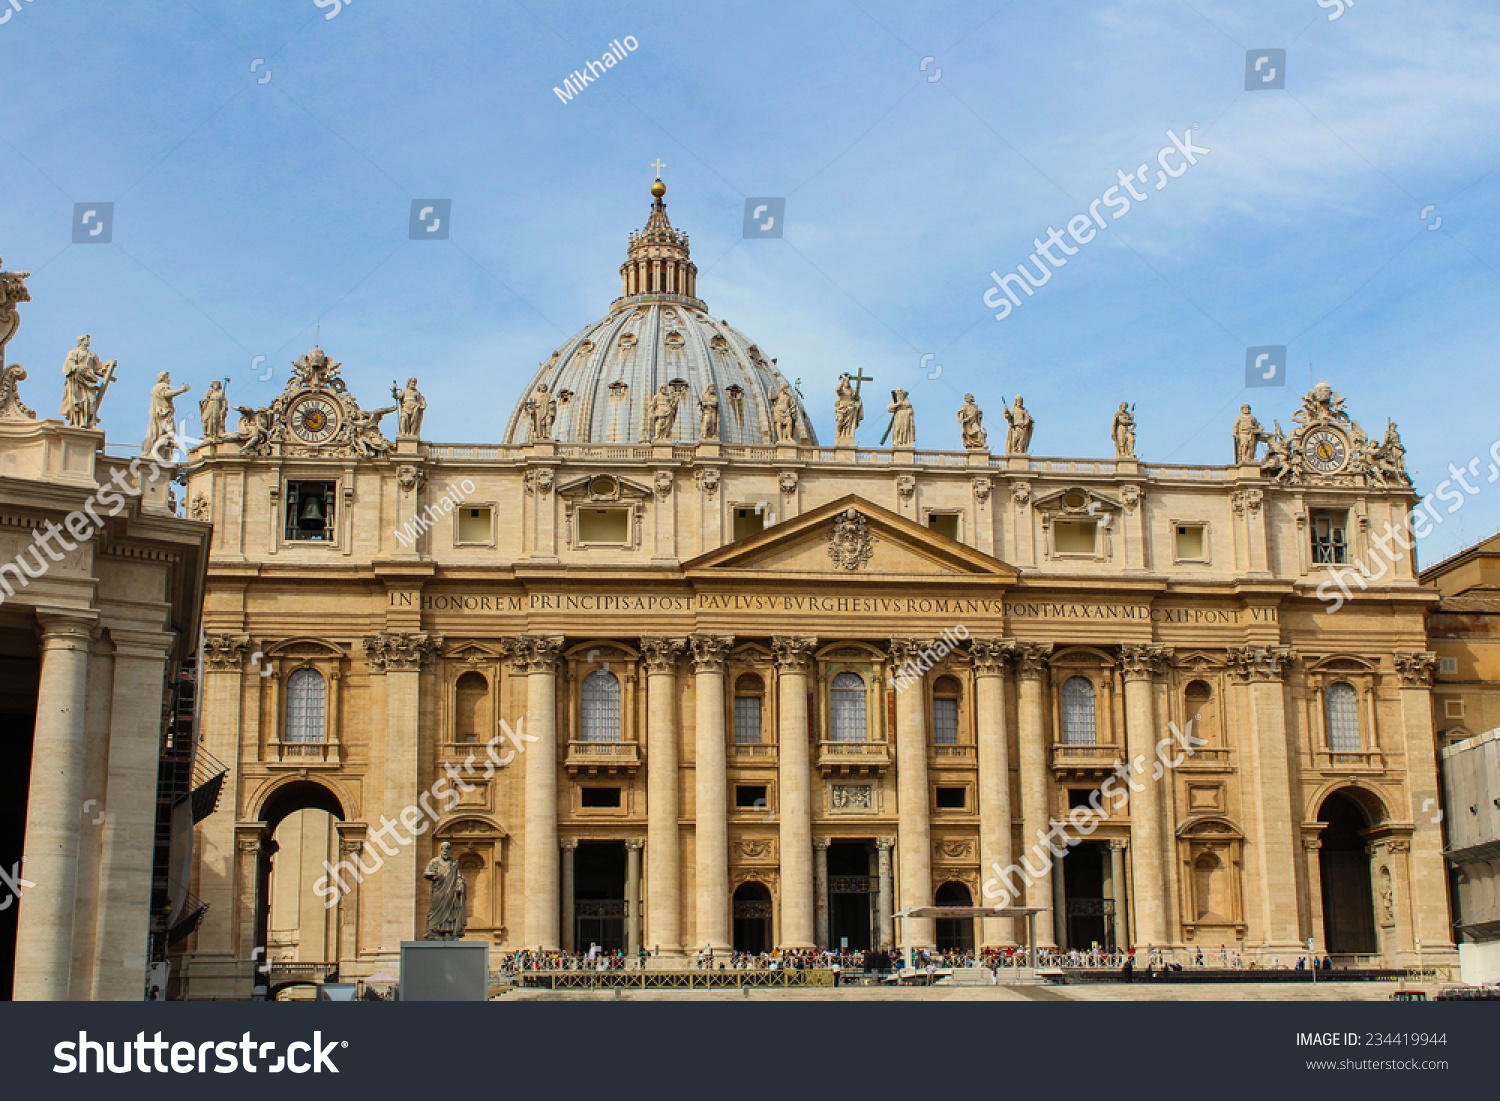 Vatican Saint Peter's Square is among most popular pilgrimage sites for Roman Catholics